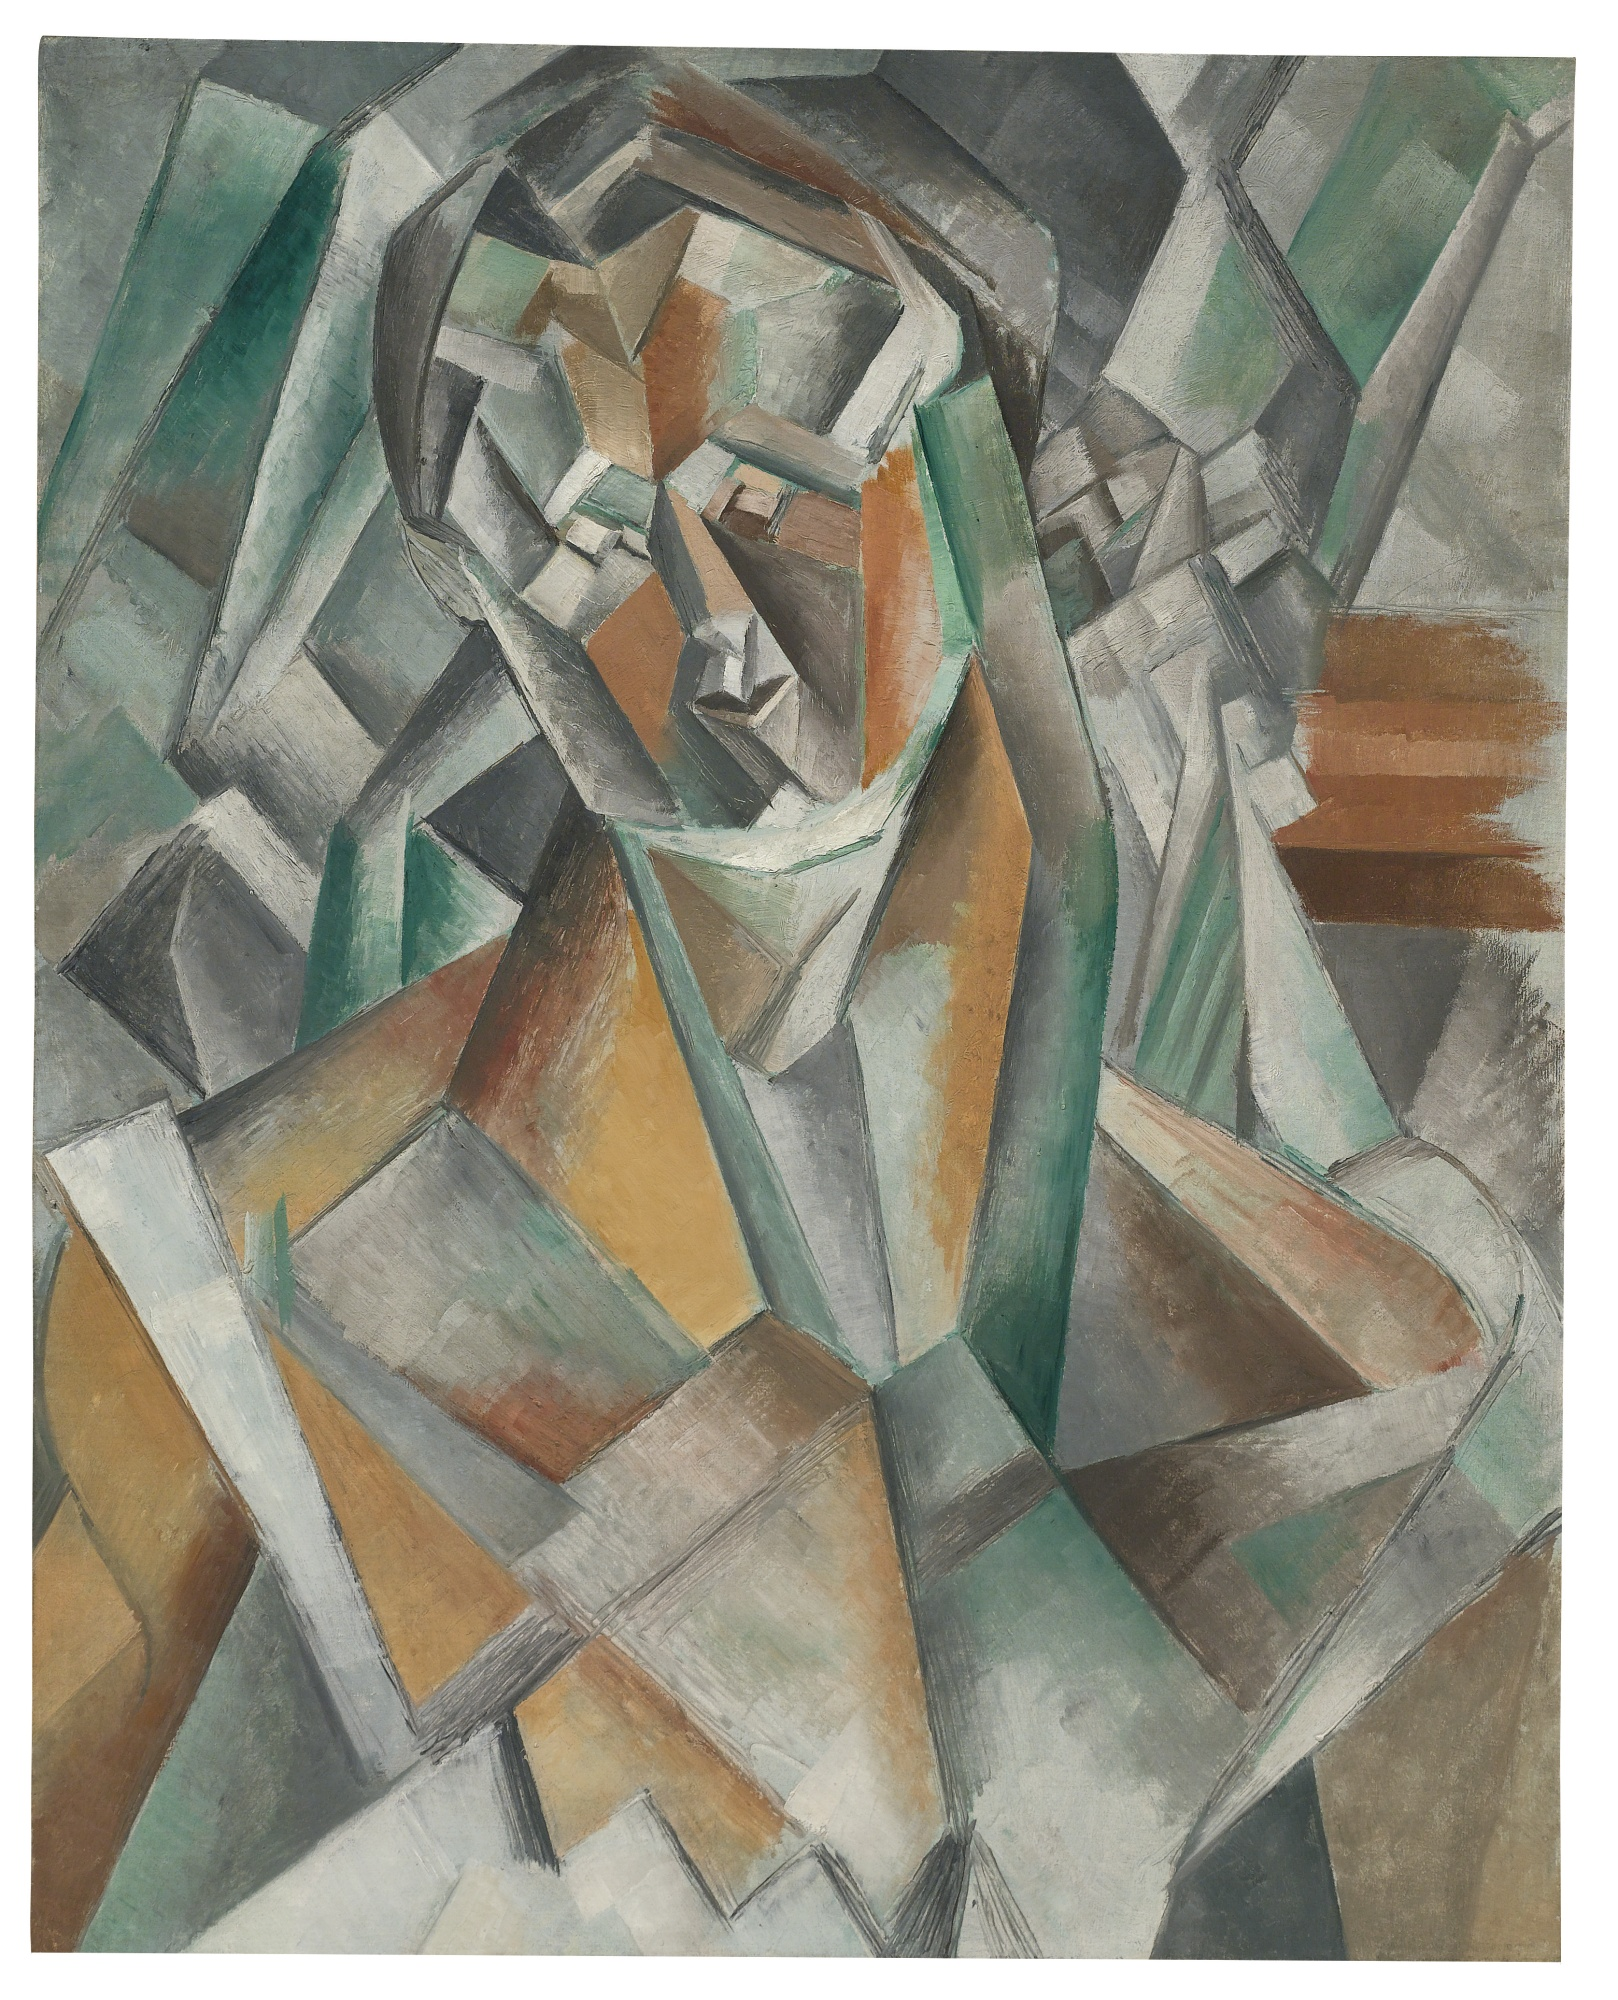 Pablo Picasso, Femme assise